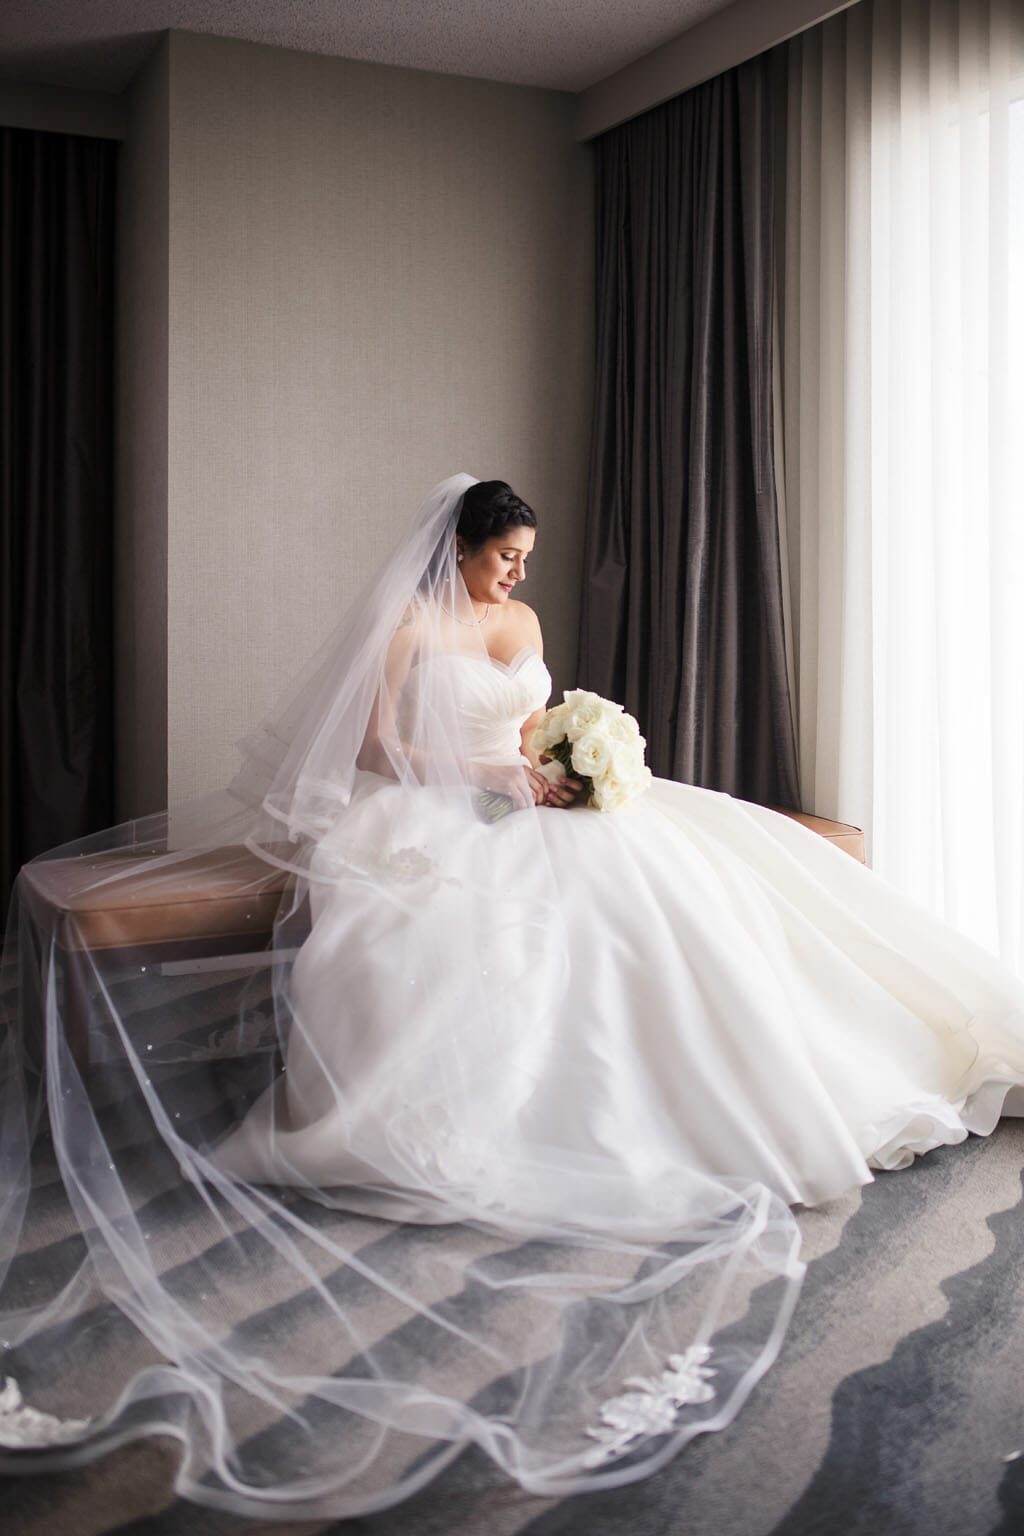 A moment of reflection and a beautiful portrait of our bride by Lin & Jirsa